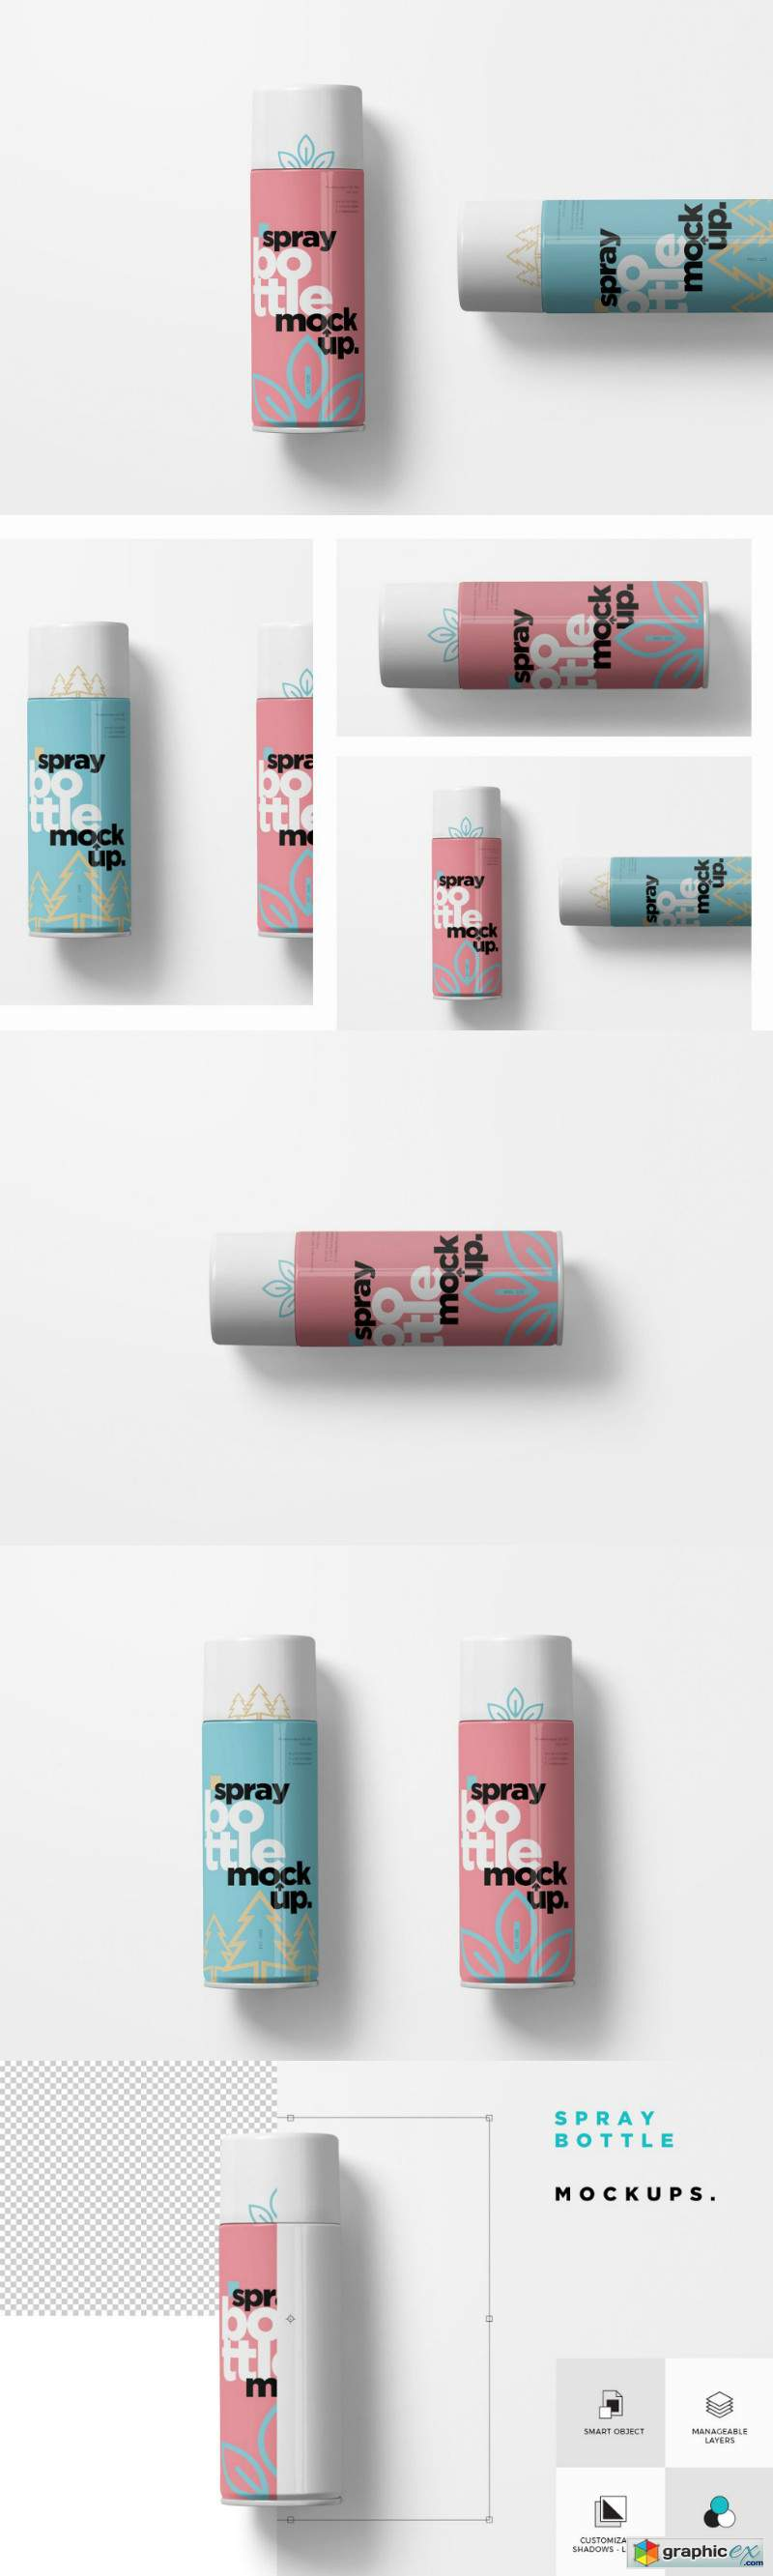 Spray Bottle Mockups